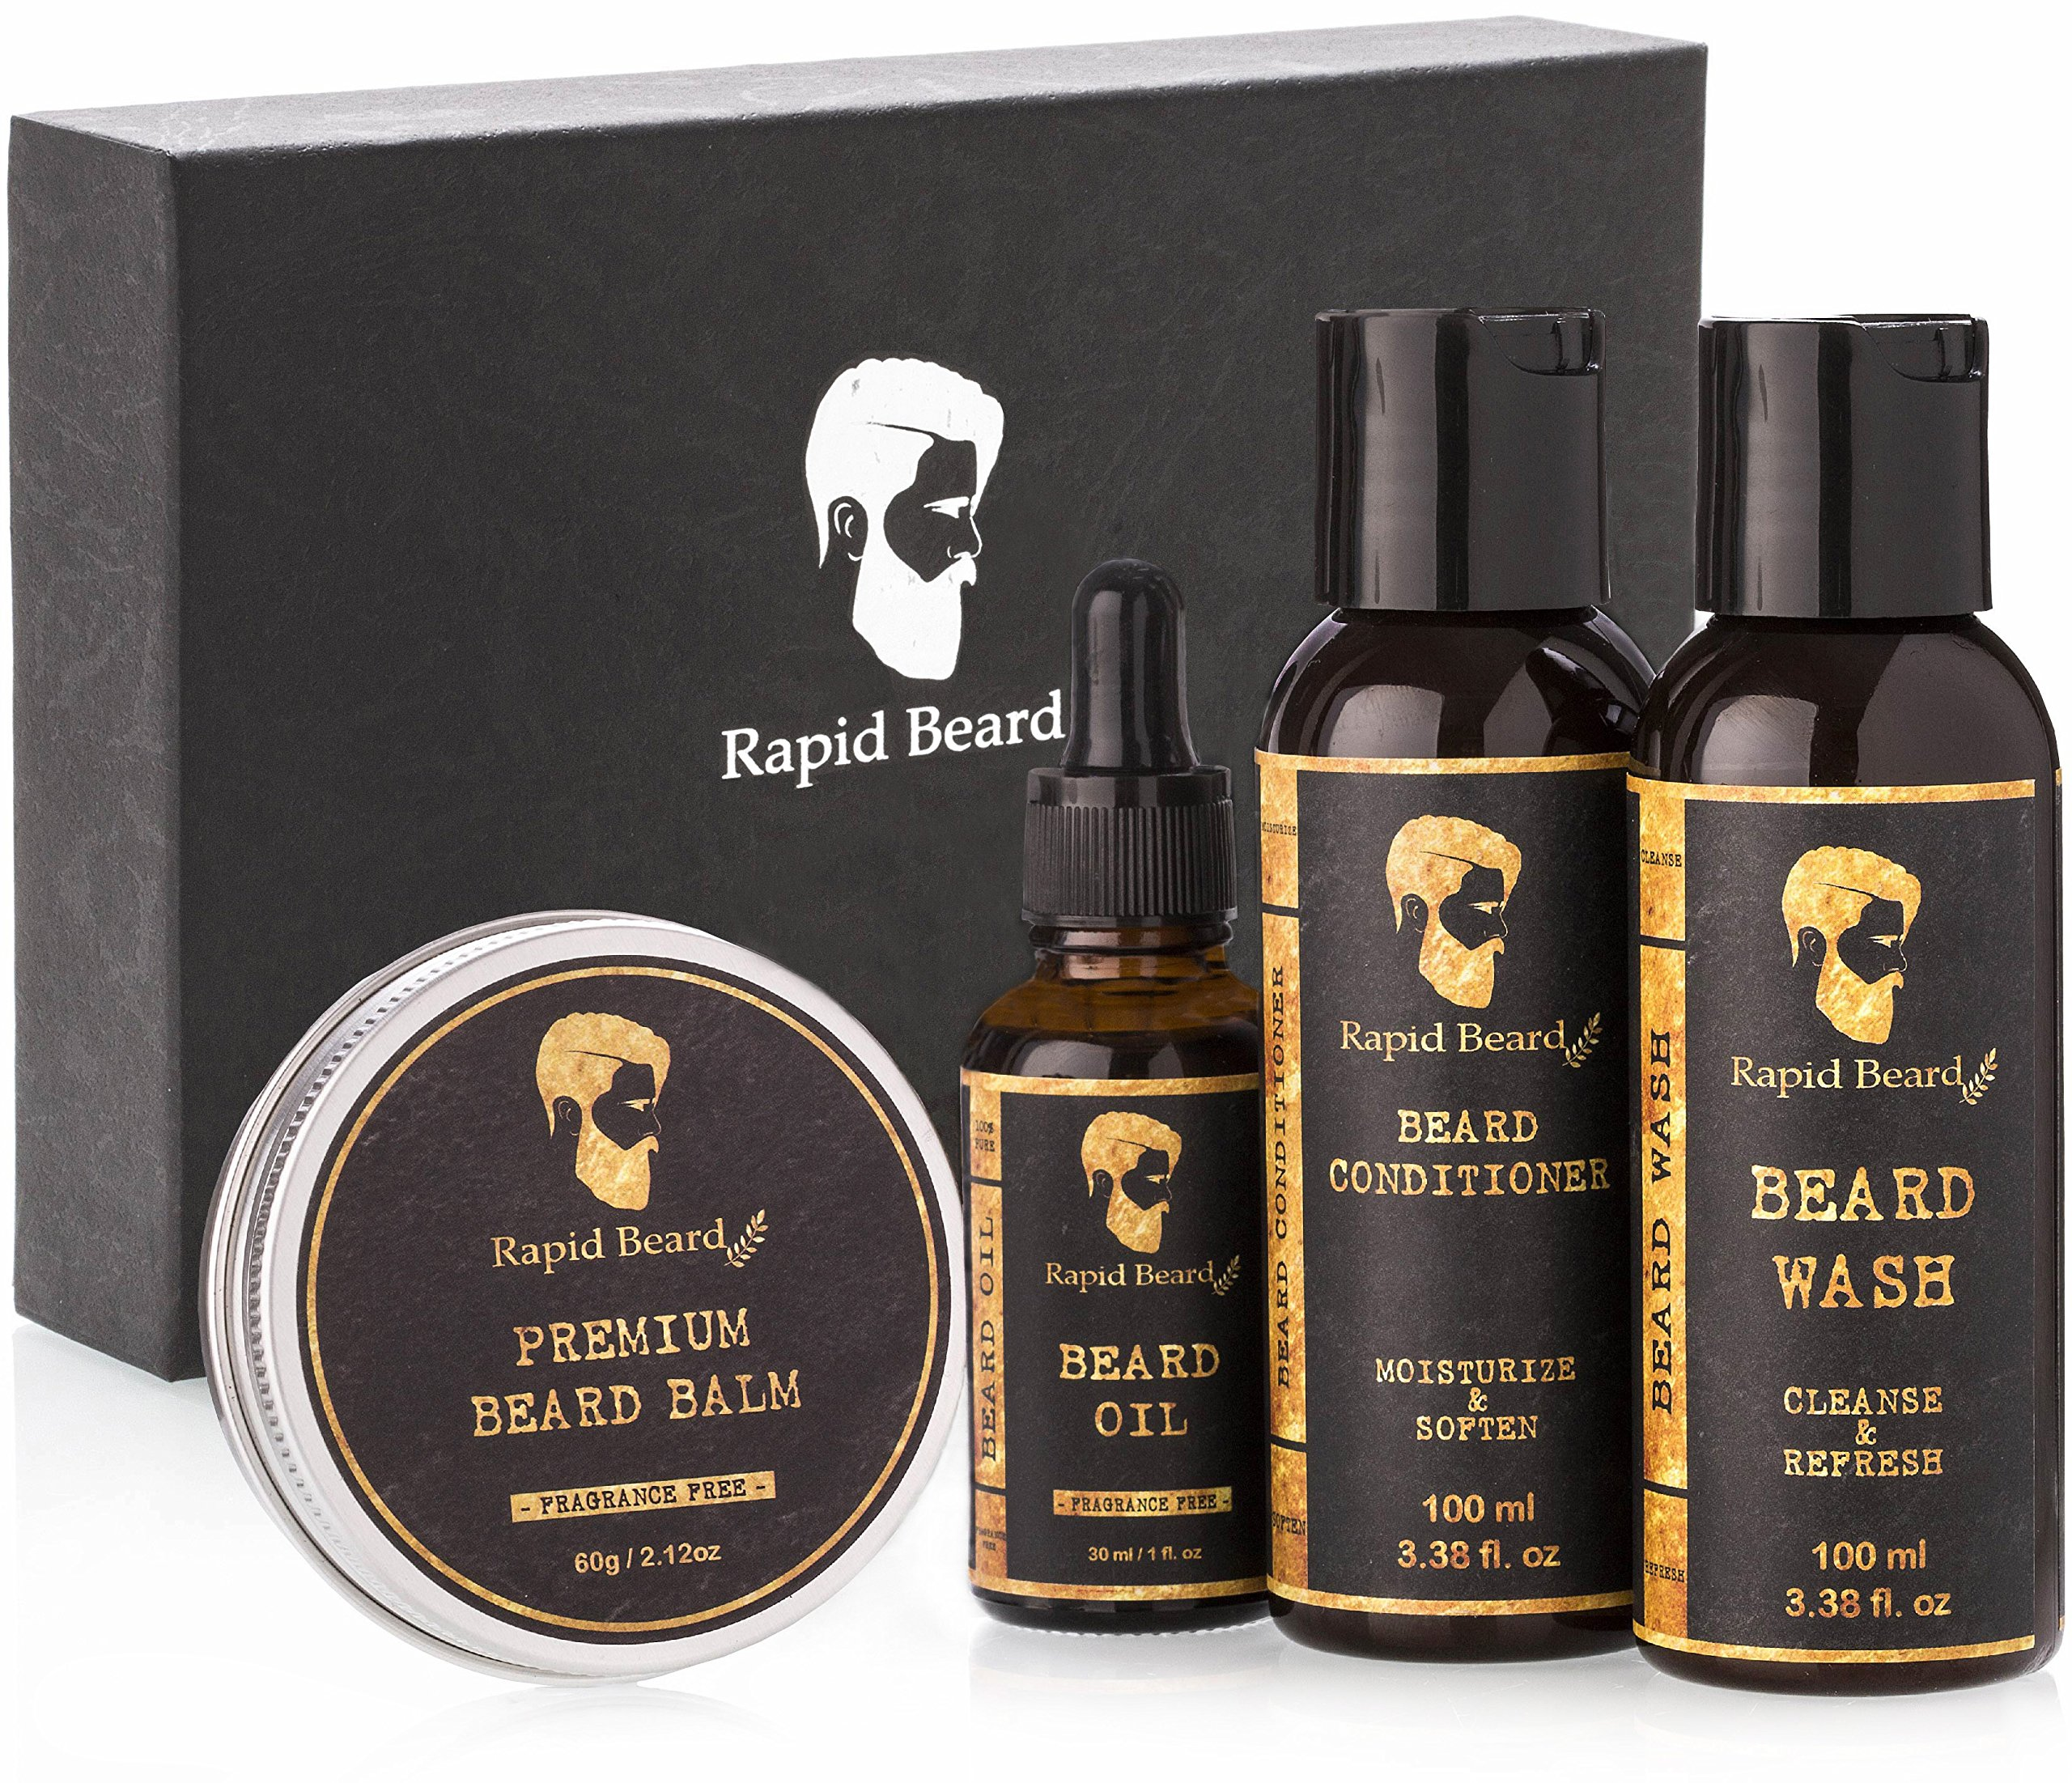 Beard Grooming kit for Men Care - Unscented Beard Oil, Beard Shampoo Wash, Beard Conditioner Softener, Fragrance Free Beard Balm Leave-in Wax Butter - for Styling Shaping & Growth Mustache Gift Set